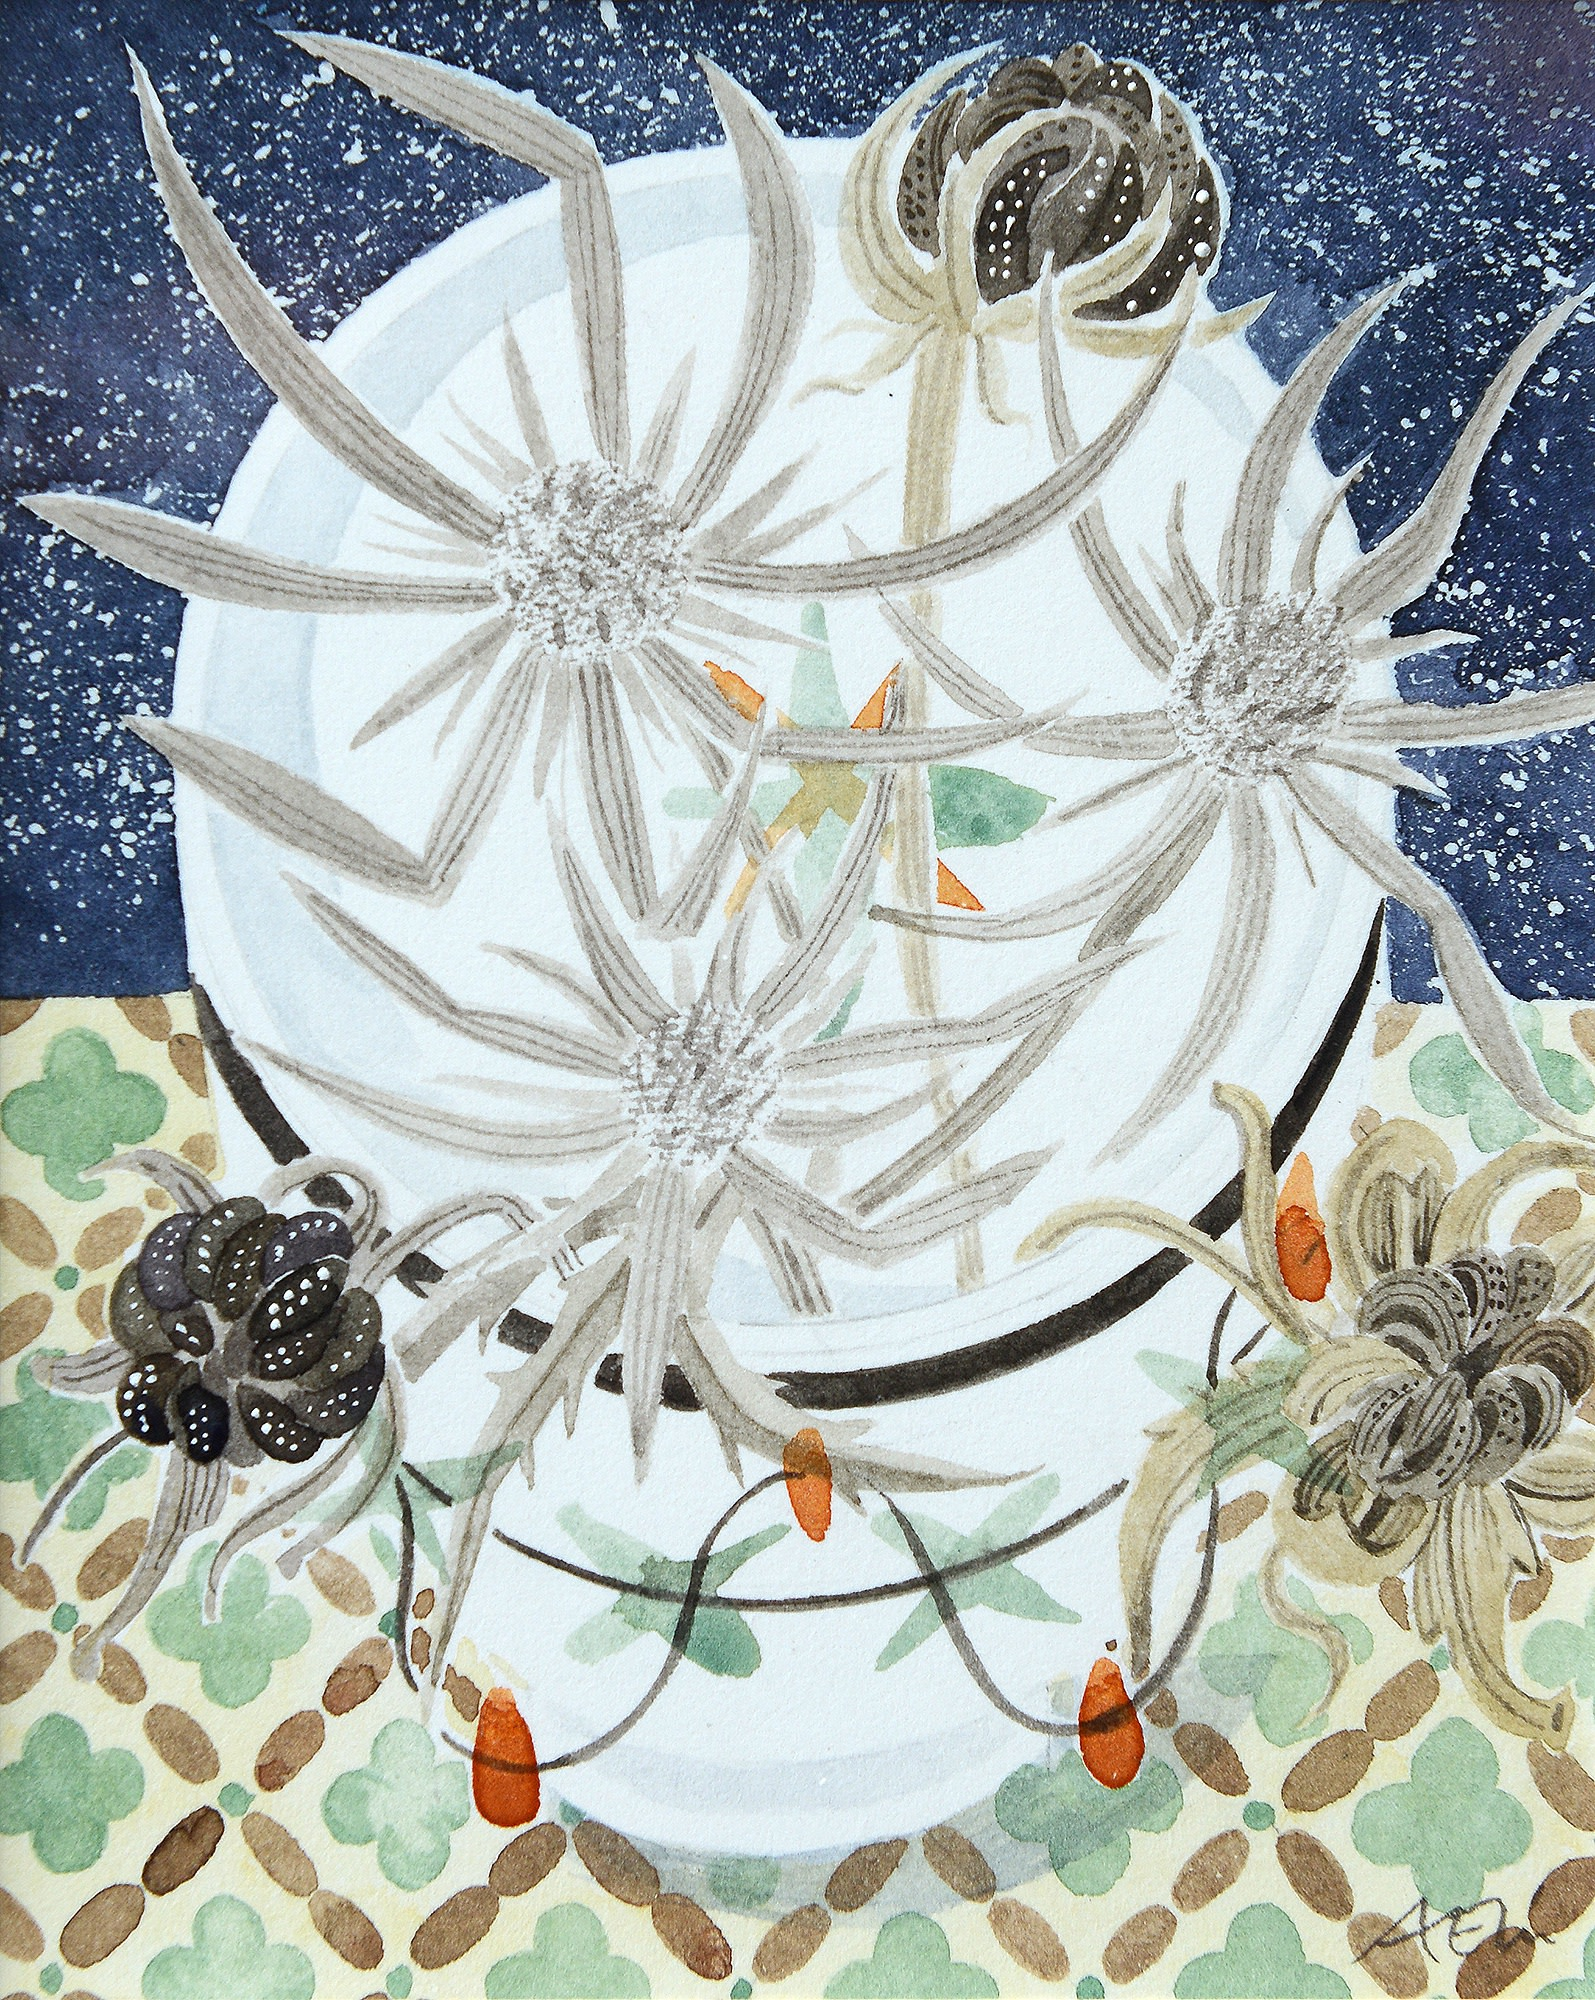 """<span class=""""link fancybox-details-link""""><a href=""""/artists/129-angie-lewin/works/12249-angie-lewin-teabowl-with-garden-seedheads/"""">View Detail Page</a></span><div class=""""artist""""><span class=""""artist""""><strong>Angie Lewin</strong></span></div><div class=""""title""""><em>Teabowl with Garden Seedheads</em></div><div class=""""medium"""">watercolour</div><div class=""""dimensions"""">Frame: 29 x 26 cm<br /> Artwork: 12 x 9.5 cm</div><div class=""""price"""">£345.00</div>"""